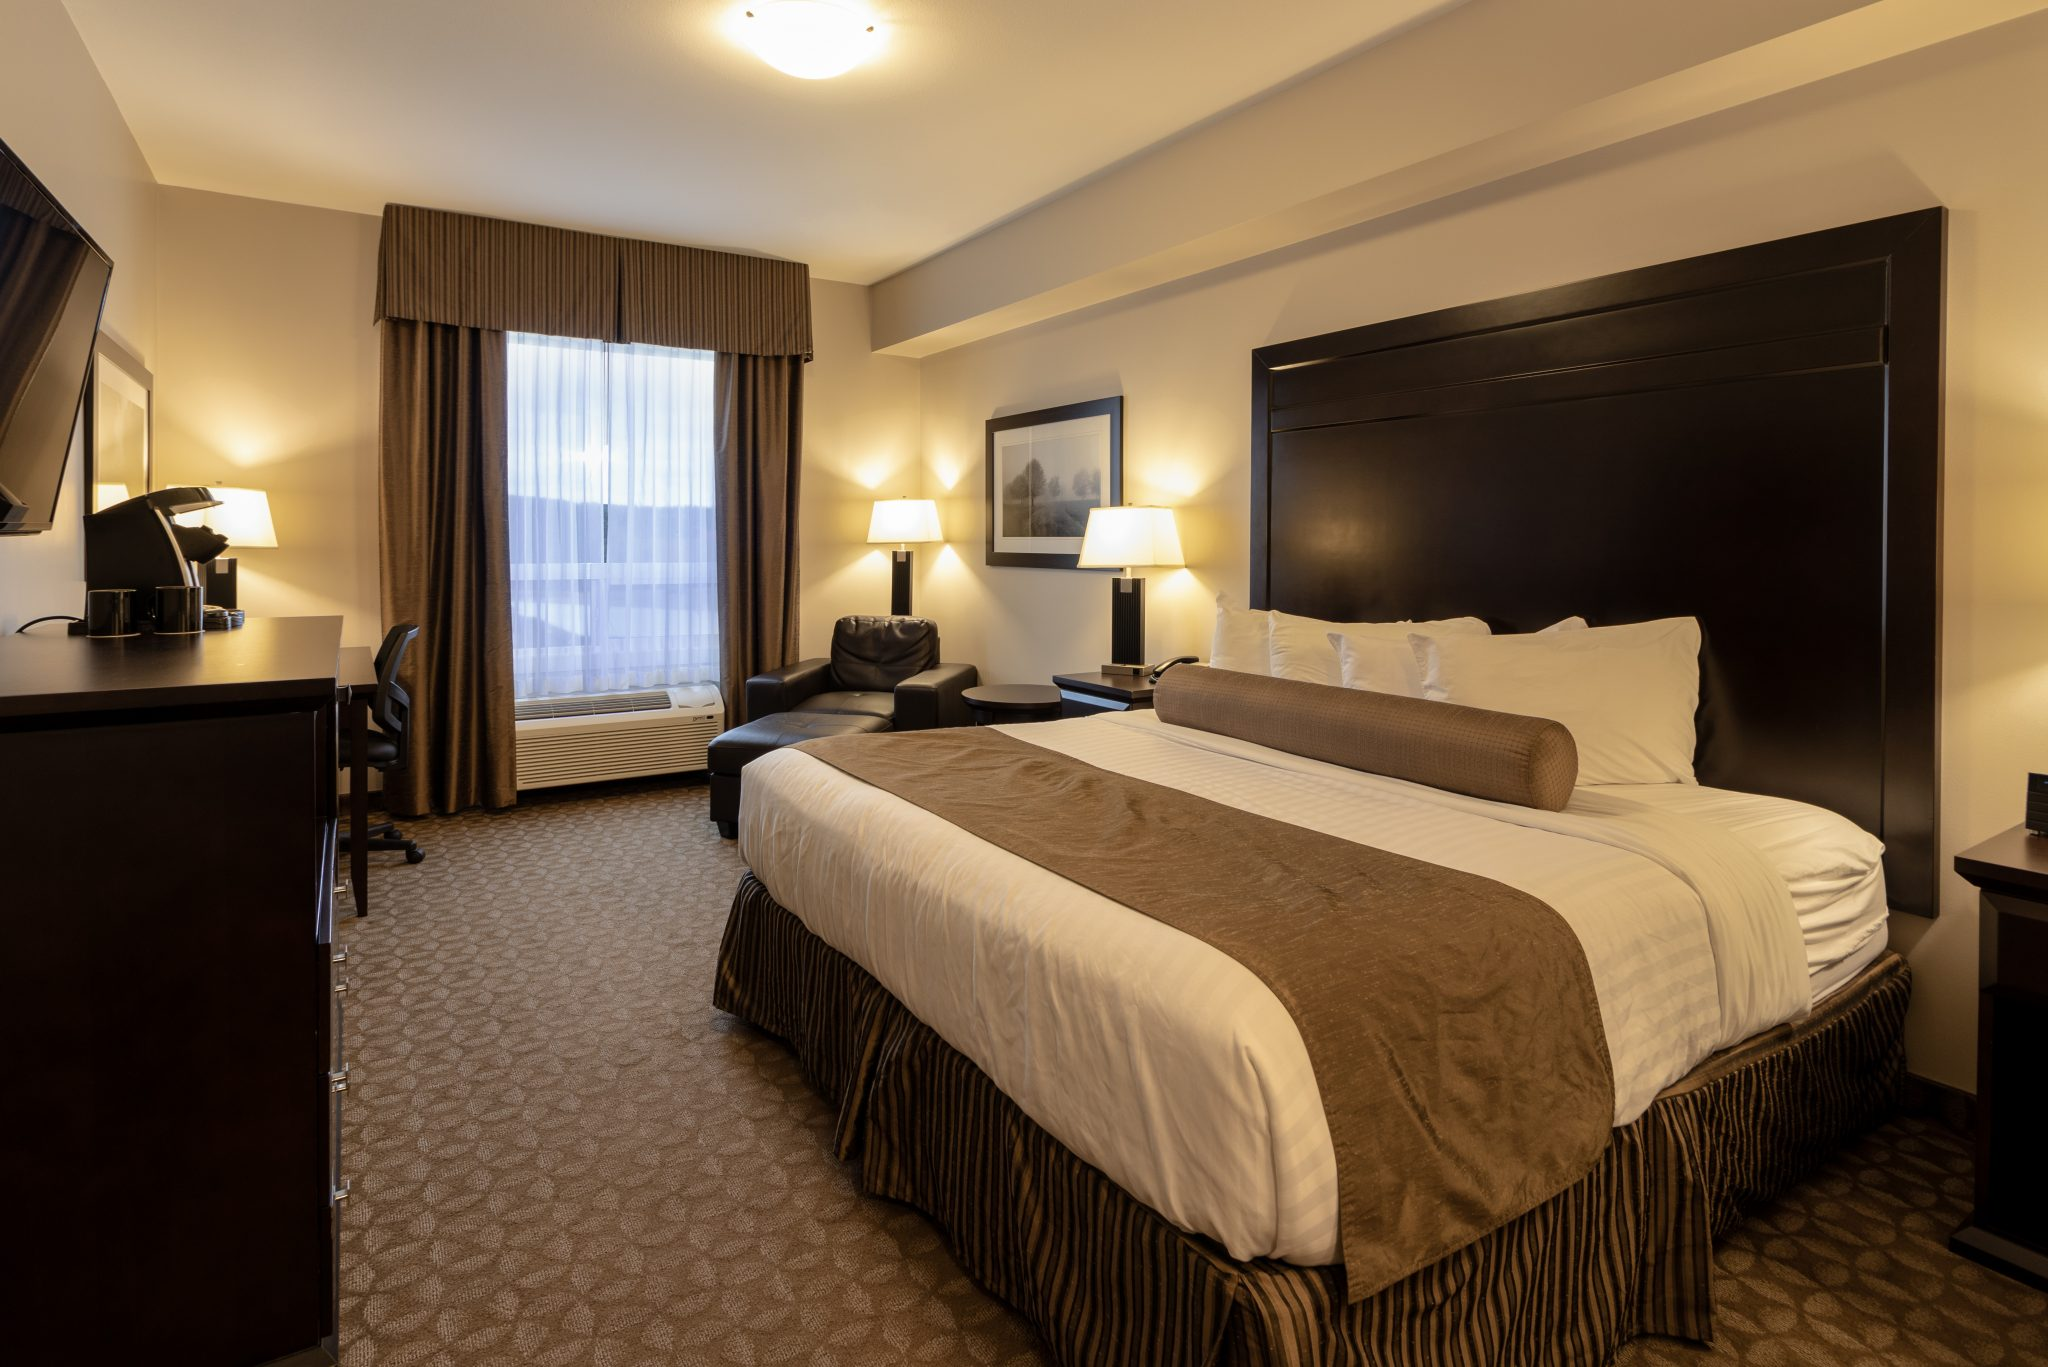 hotel in whitecourt Kanata Inns White Court Executive King